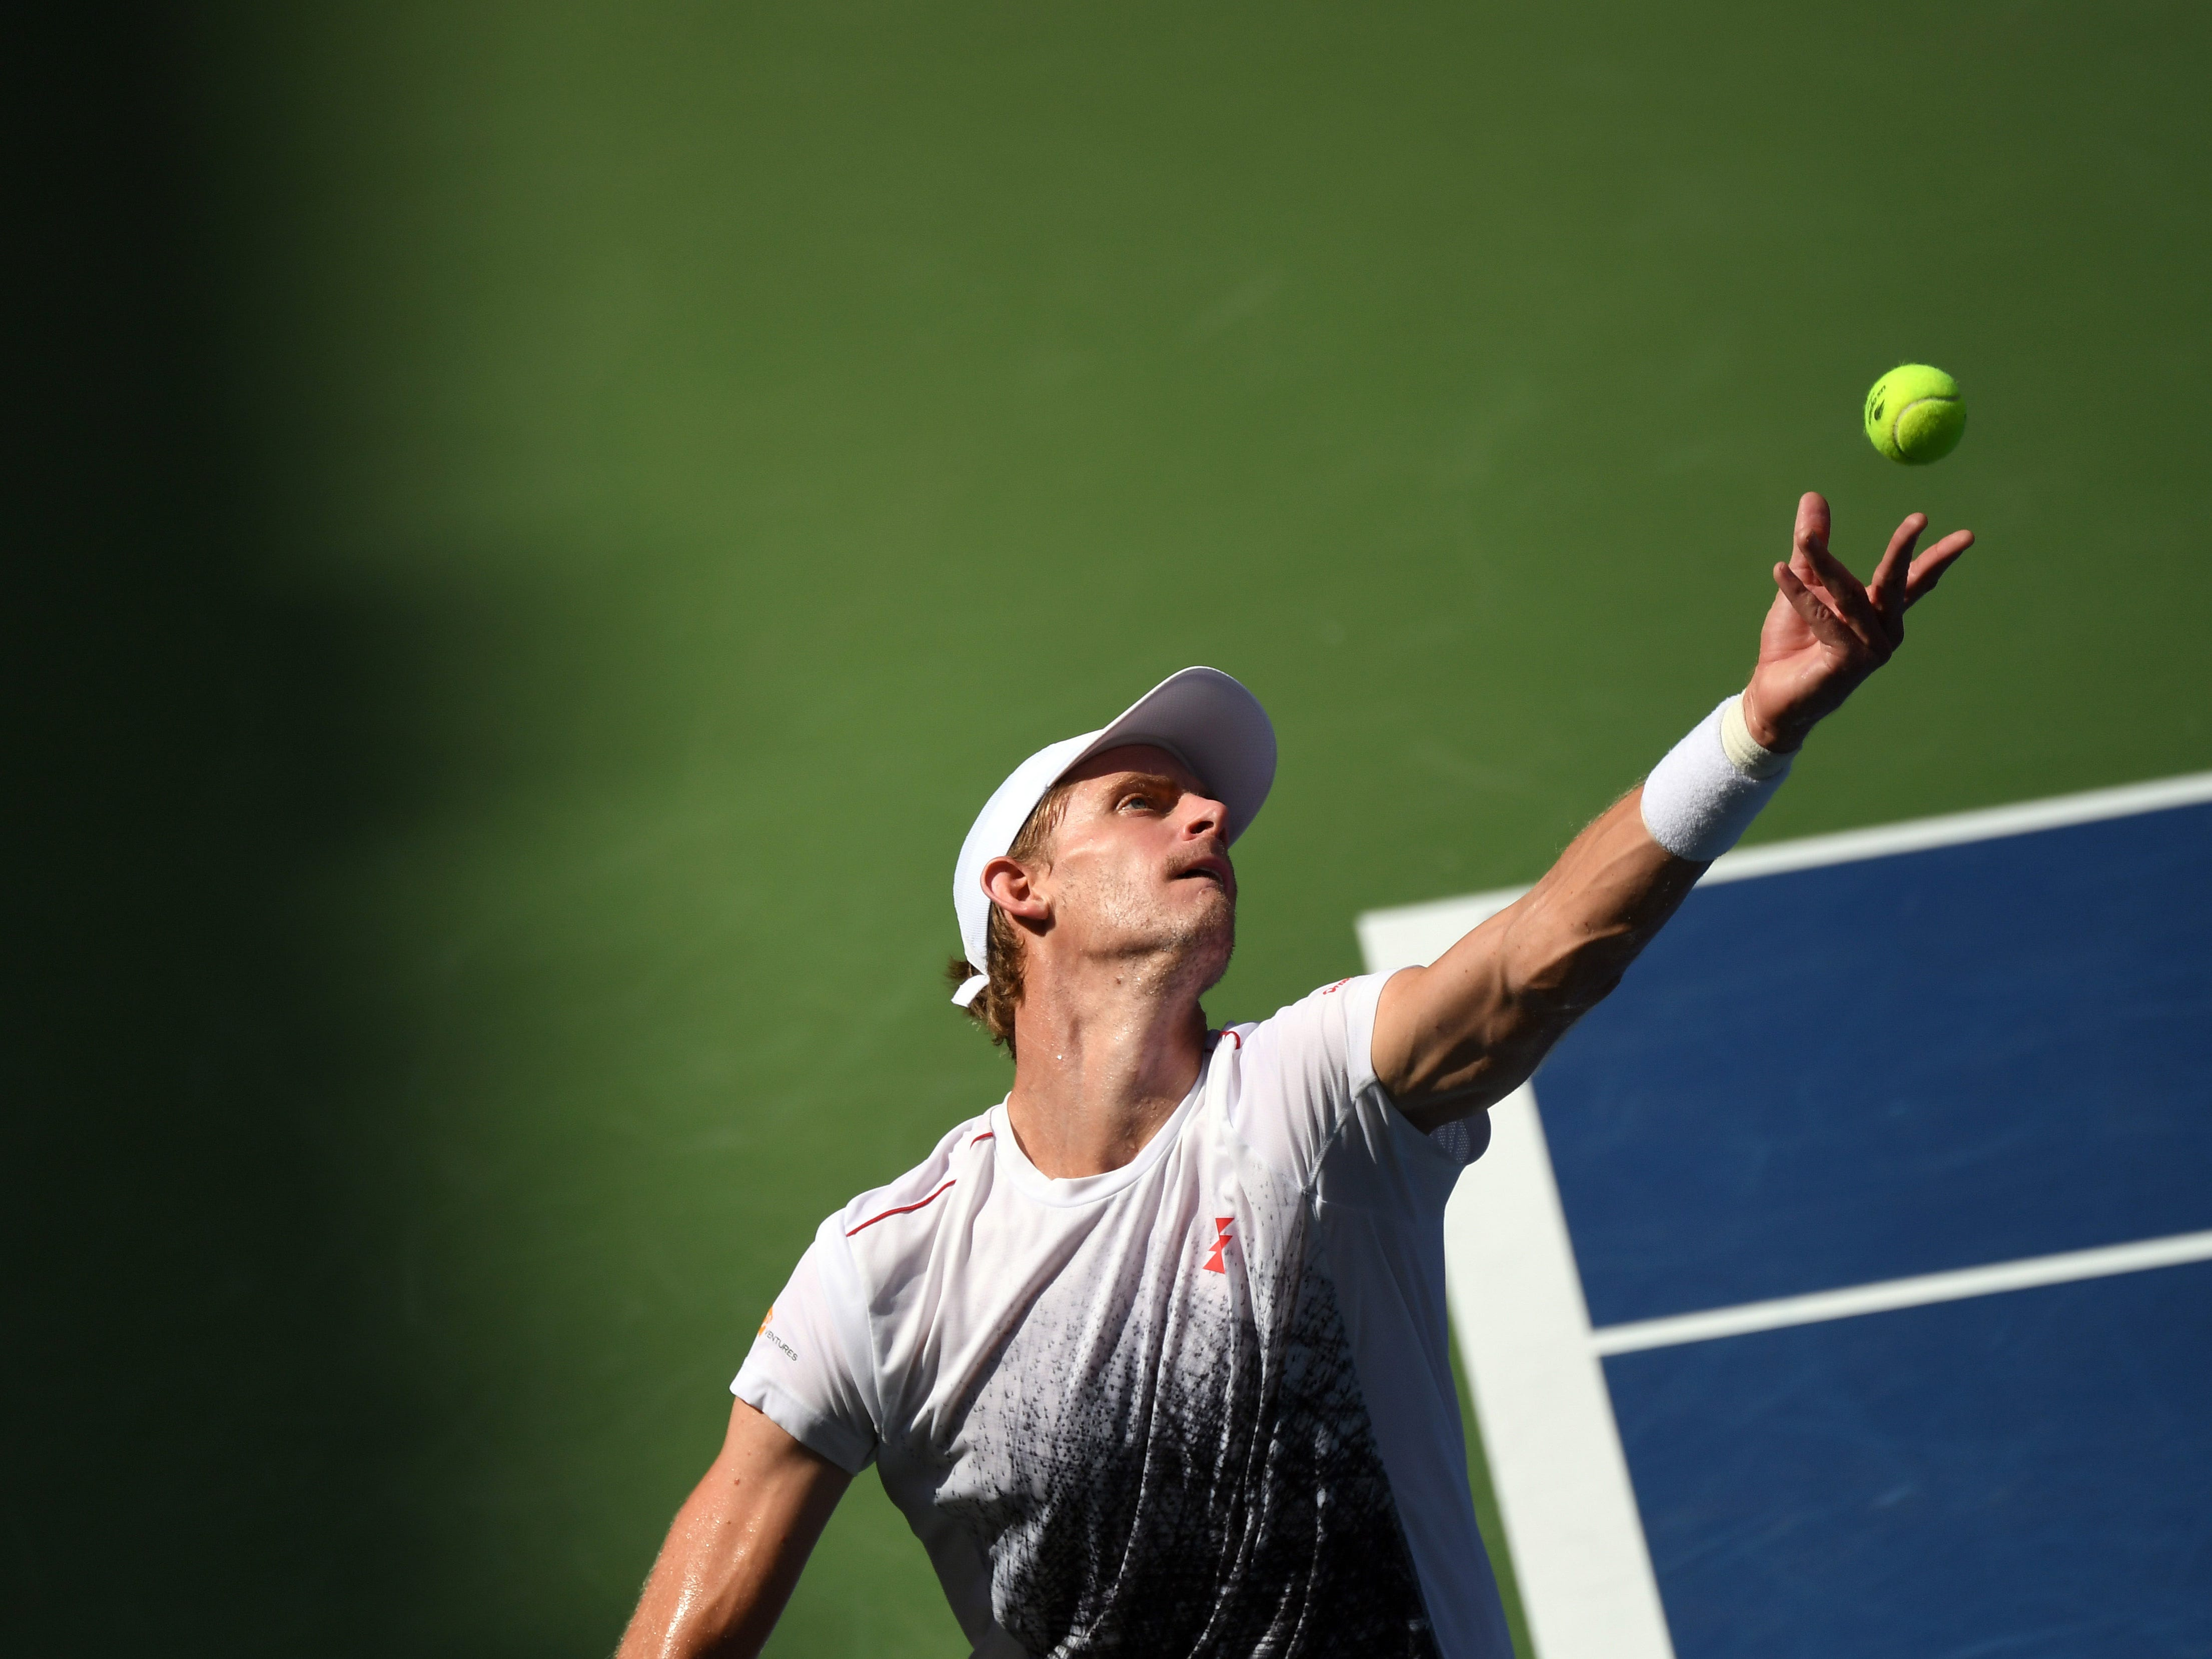 Kevin Anderson of South Africa serves to Dominic Thiem of Austria.